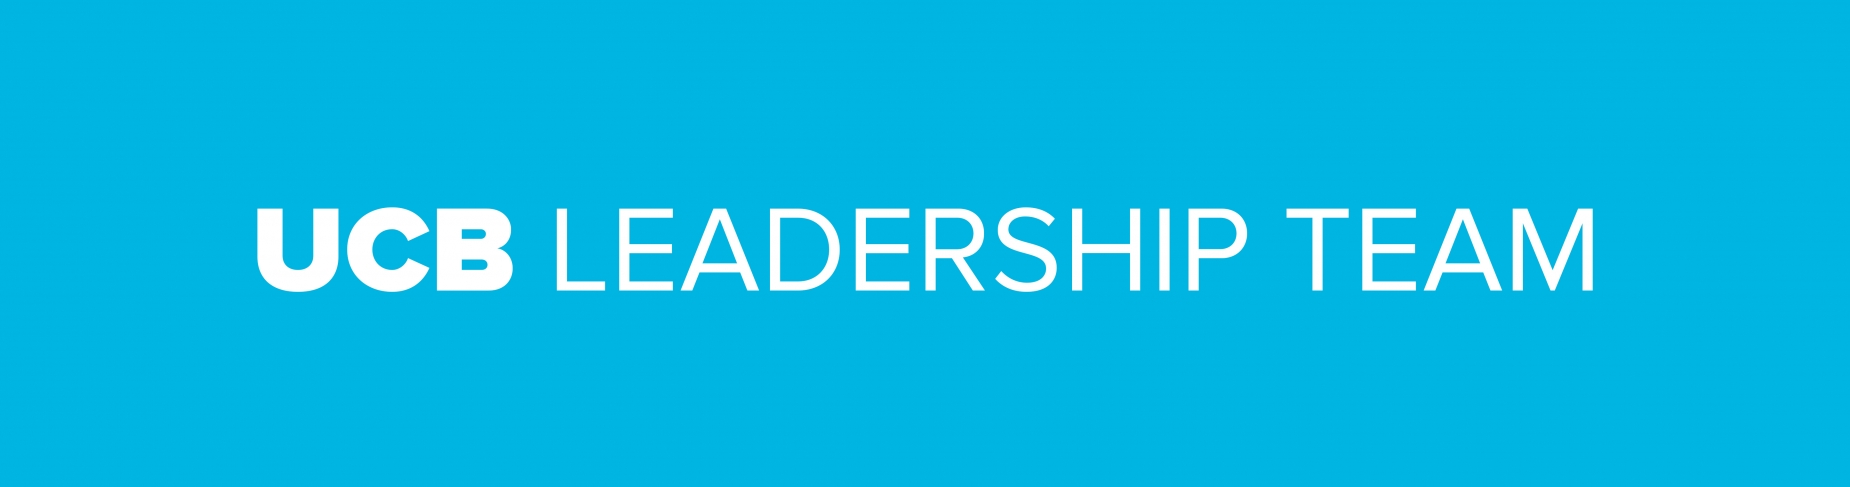 Leadership Team page header